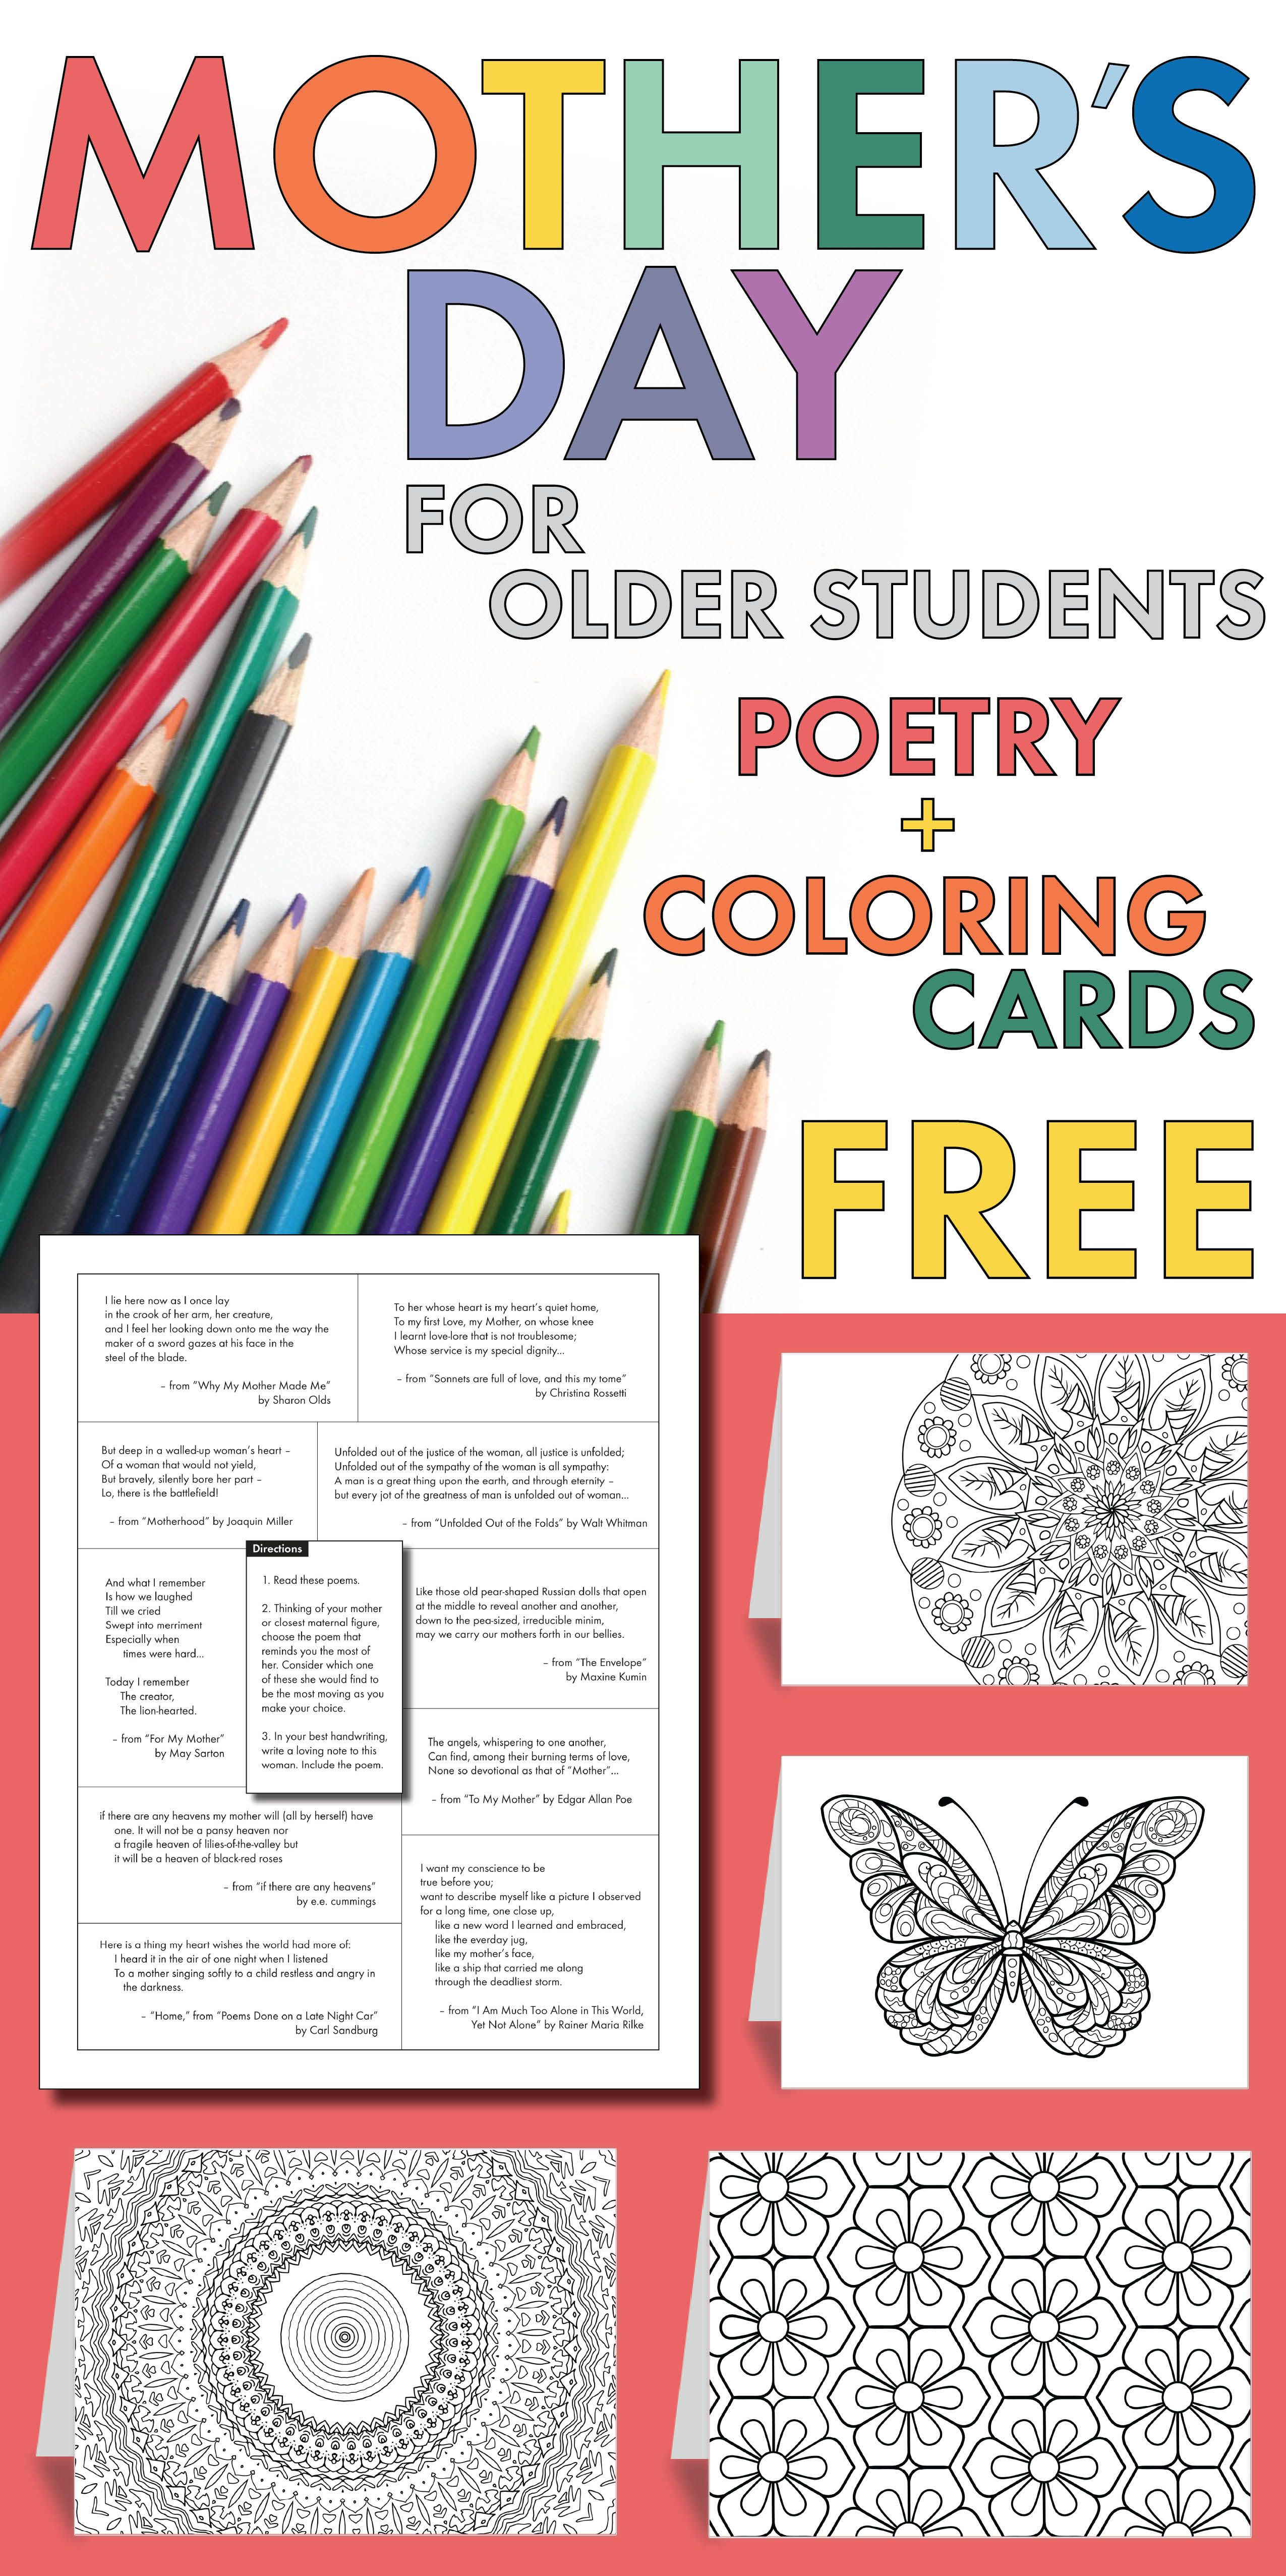 free poetry lesson mother s day card poetry for older students teens sub plan high school. Black Bedroom Furniture Sets. Home Design Ideas